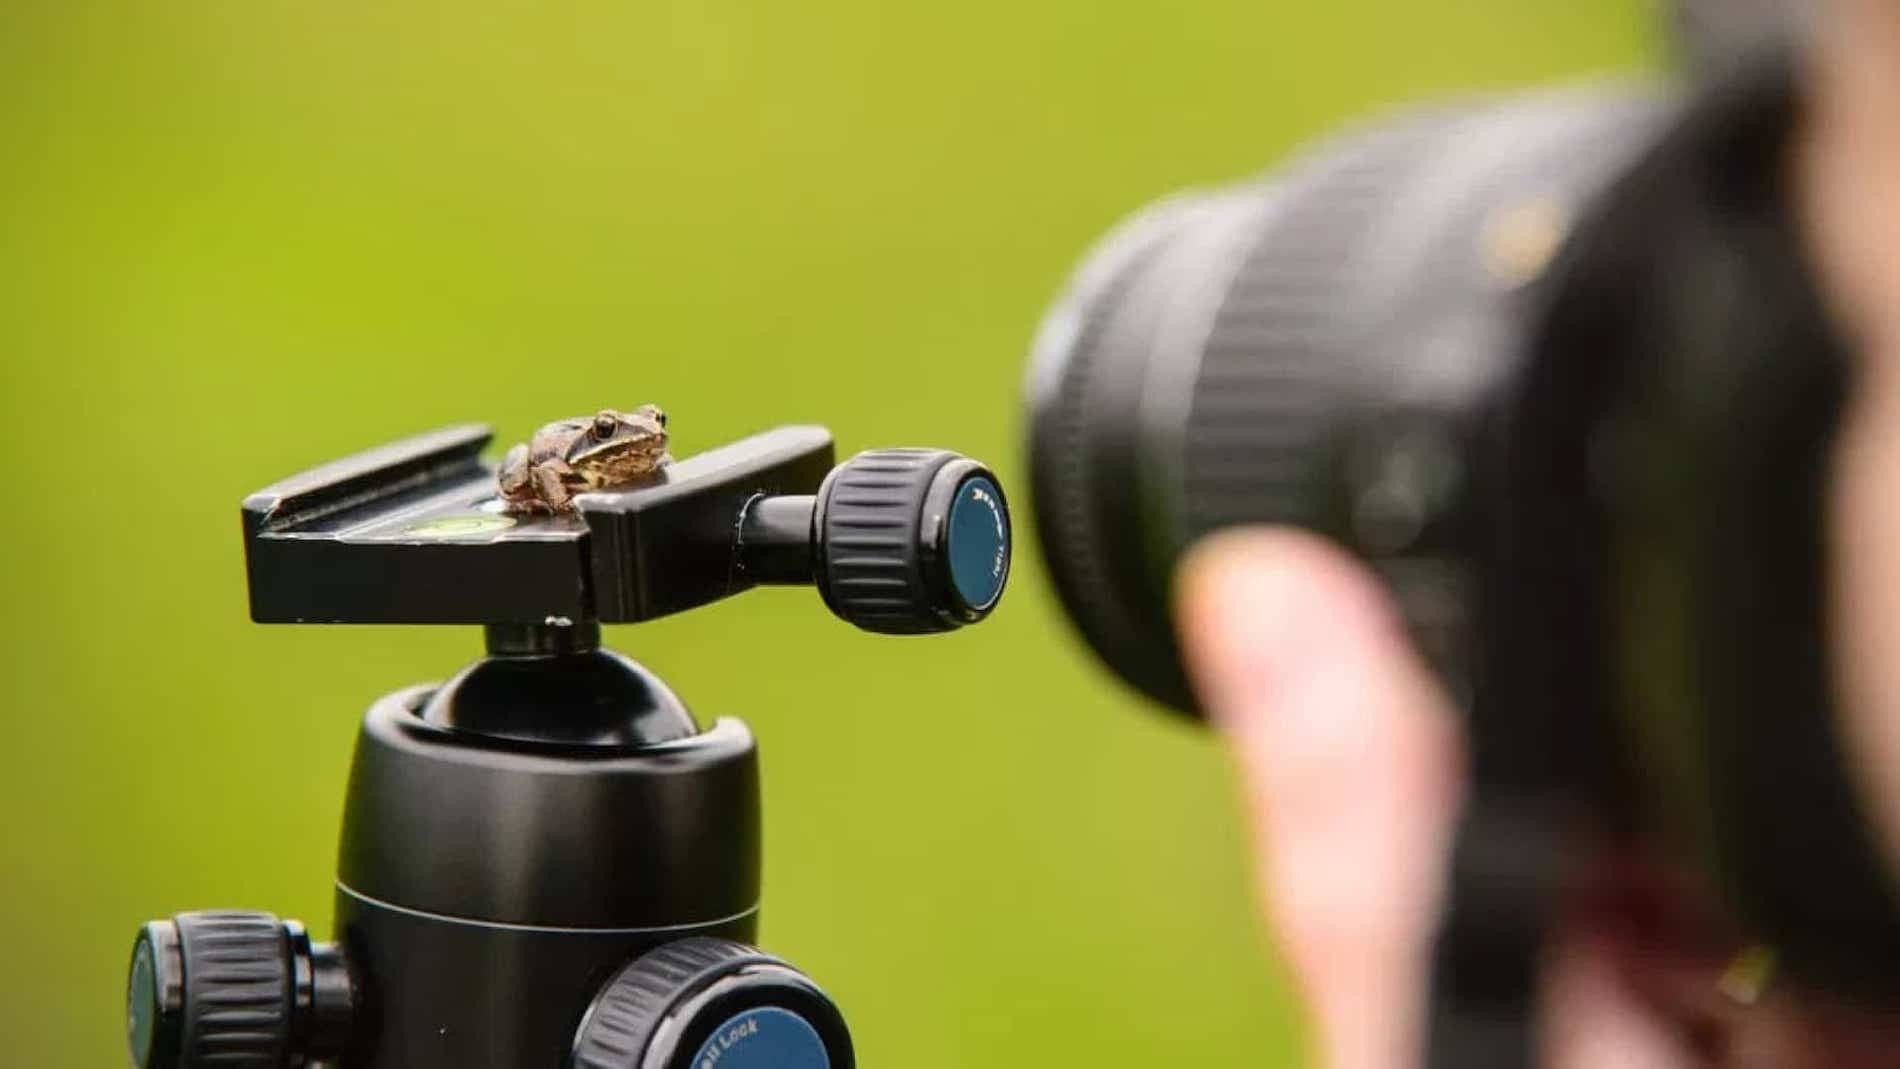 What is Macro Photography - Definition of Macro